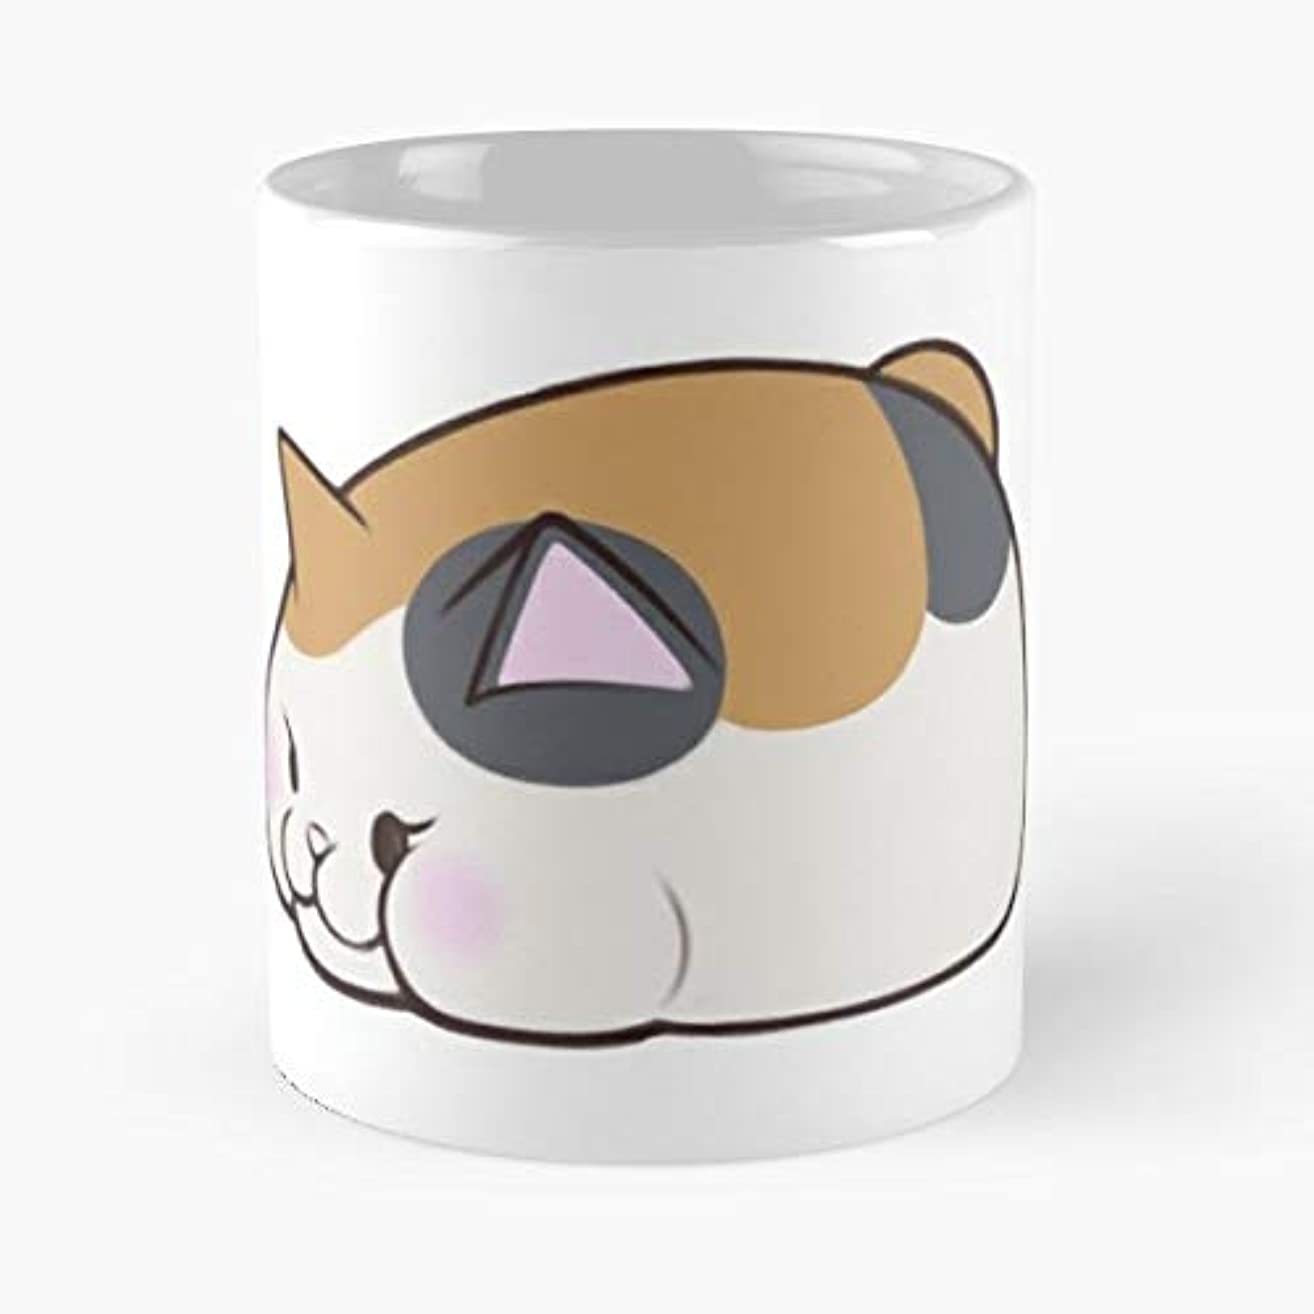 Ffxiv Ff14 Final Fantasy Xiv - Coffee Mugs Best Gift For Father Day